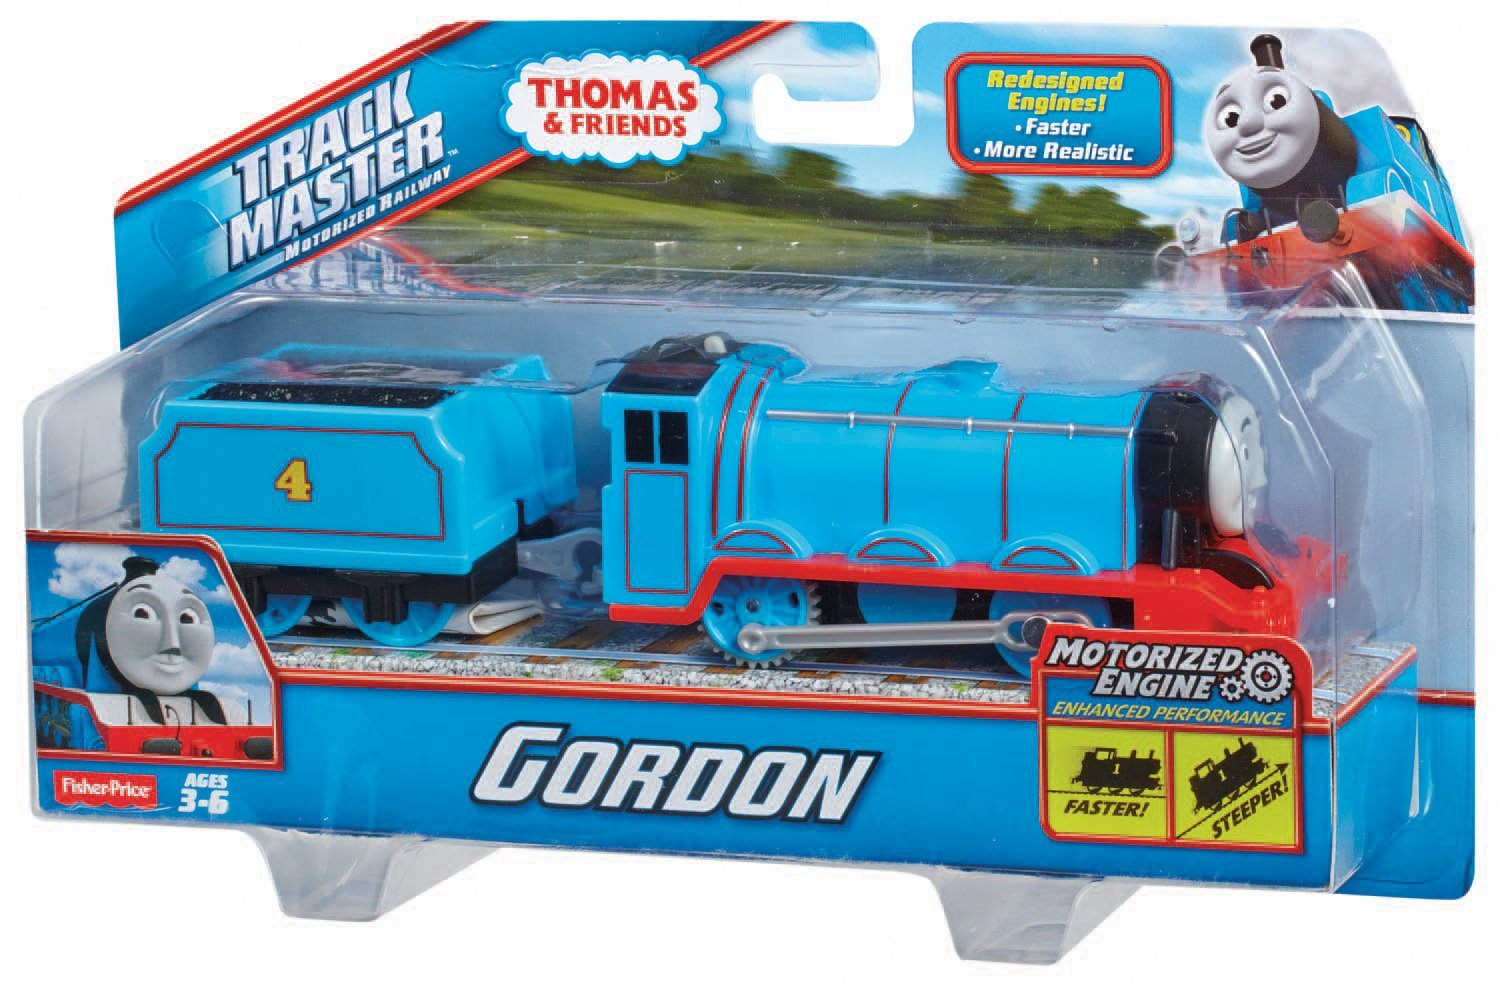 Thomas & Friends Trackmaster Gordon Engine | eBay